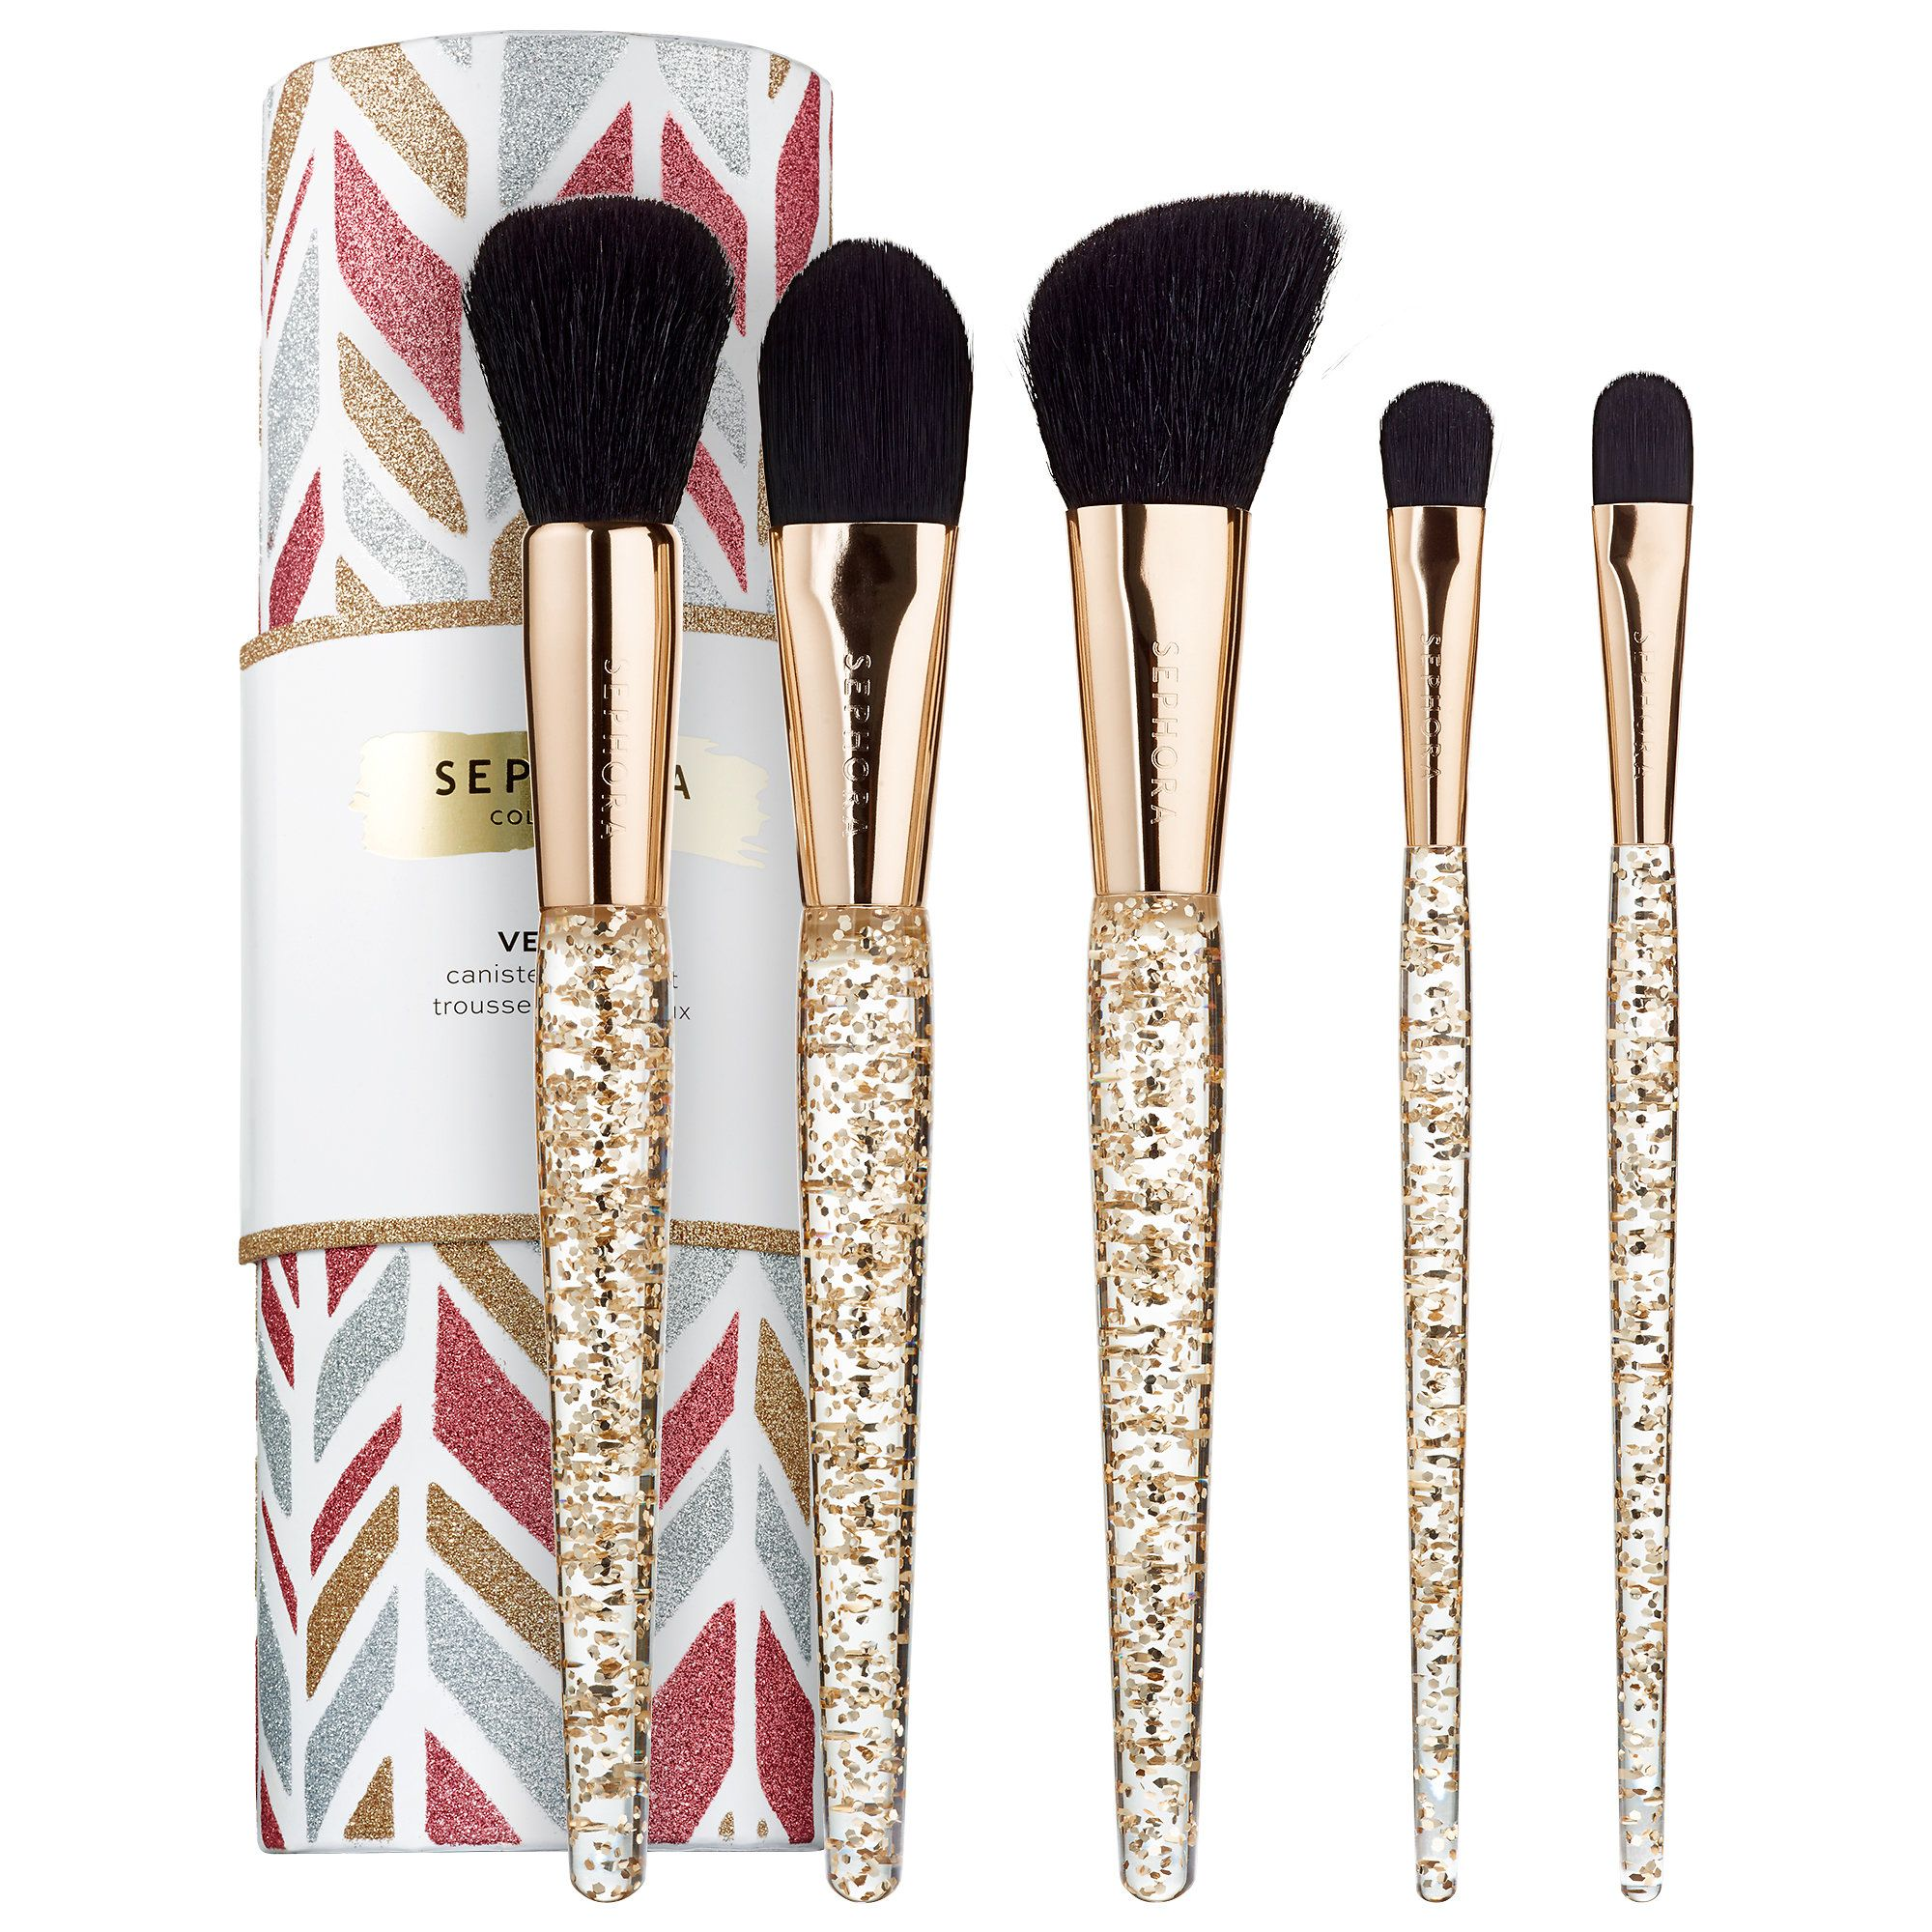 Shop SEPHORA COLLECTION's Vessel Canister Brush Set at